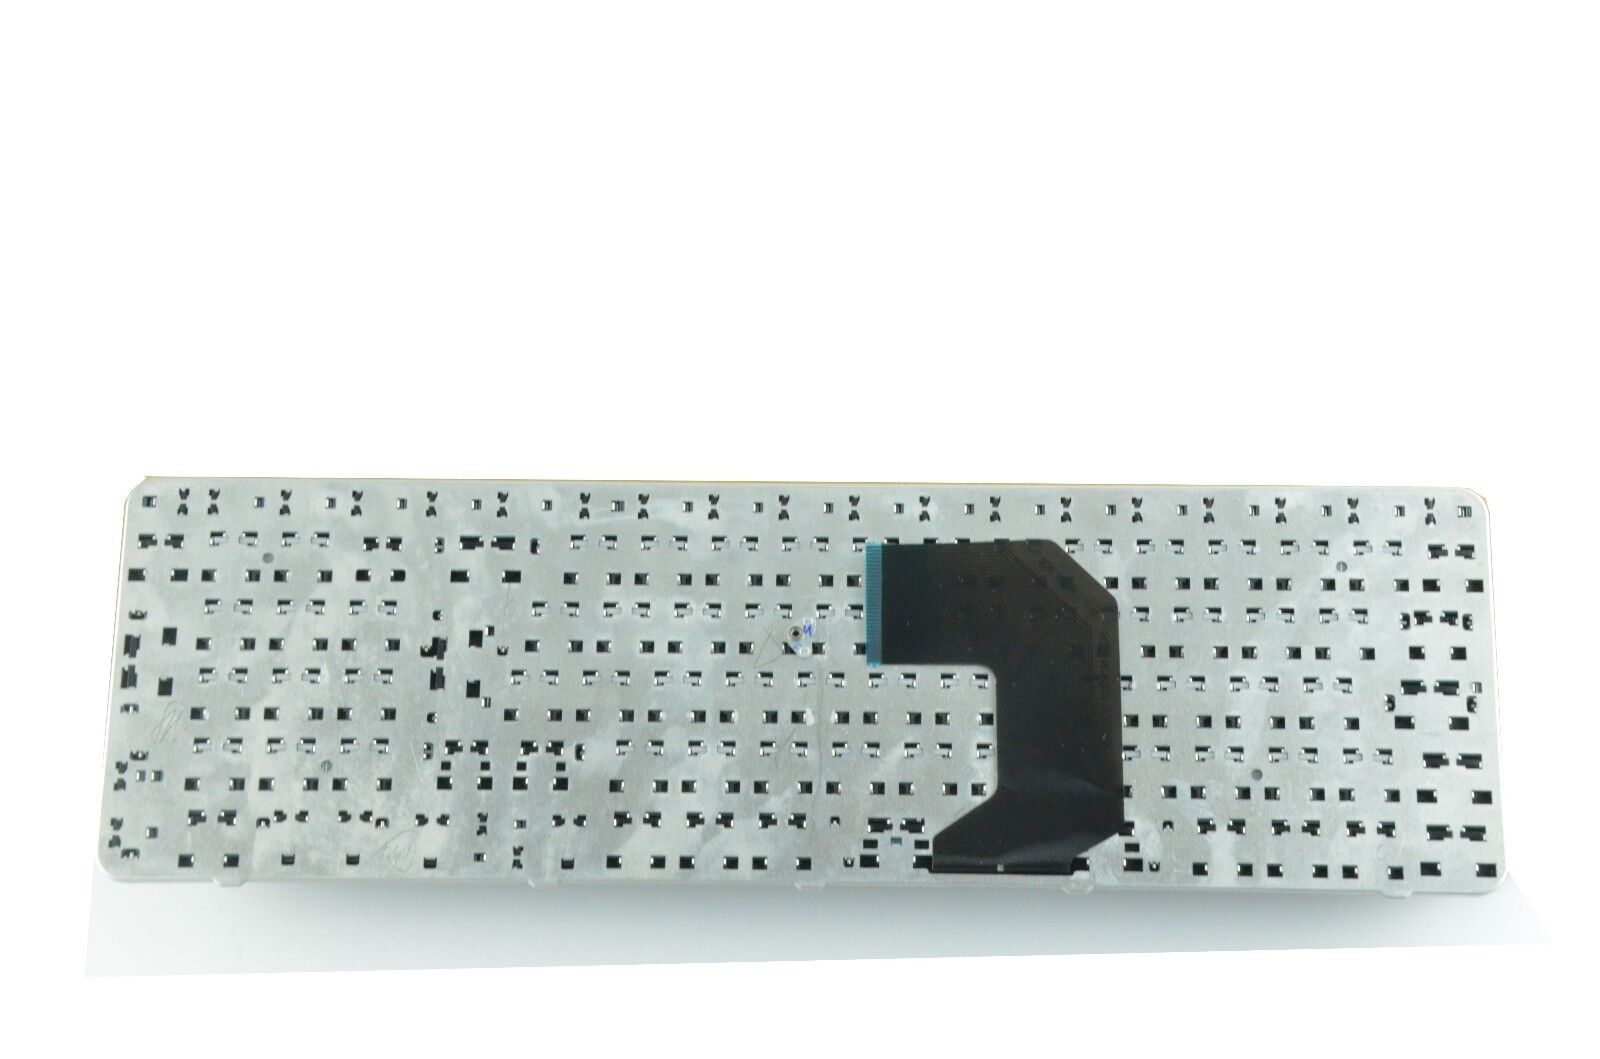 100% NEW KEYBOARD FOR HP Pavilion G7 G7-1000 646568-001 6337